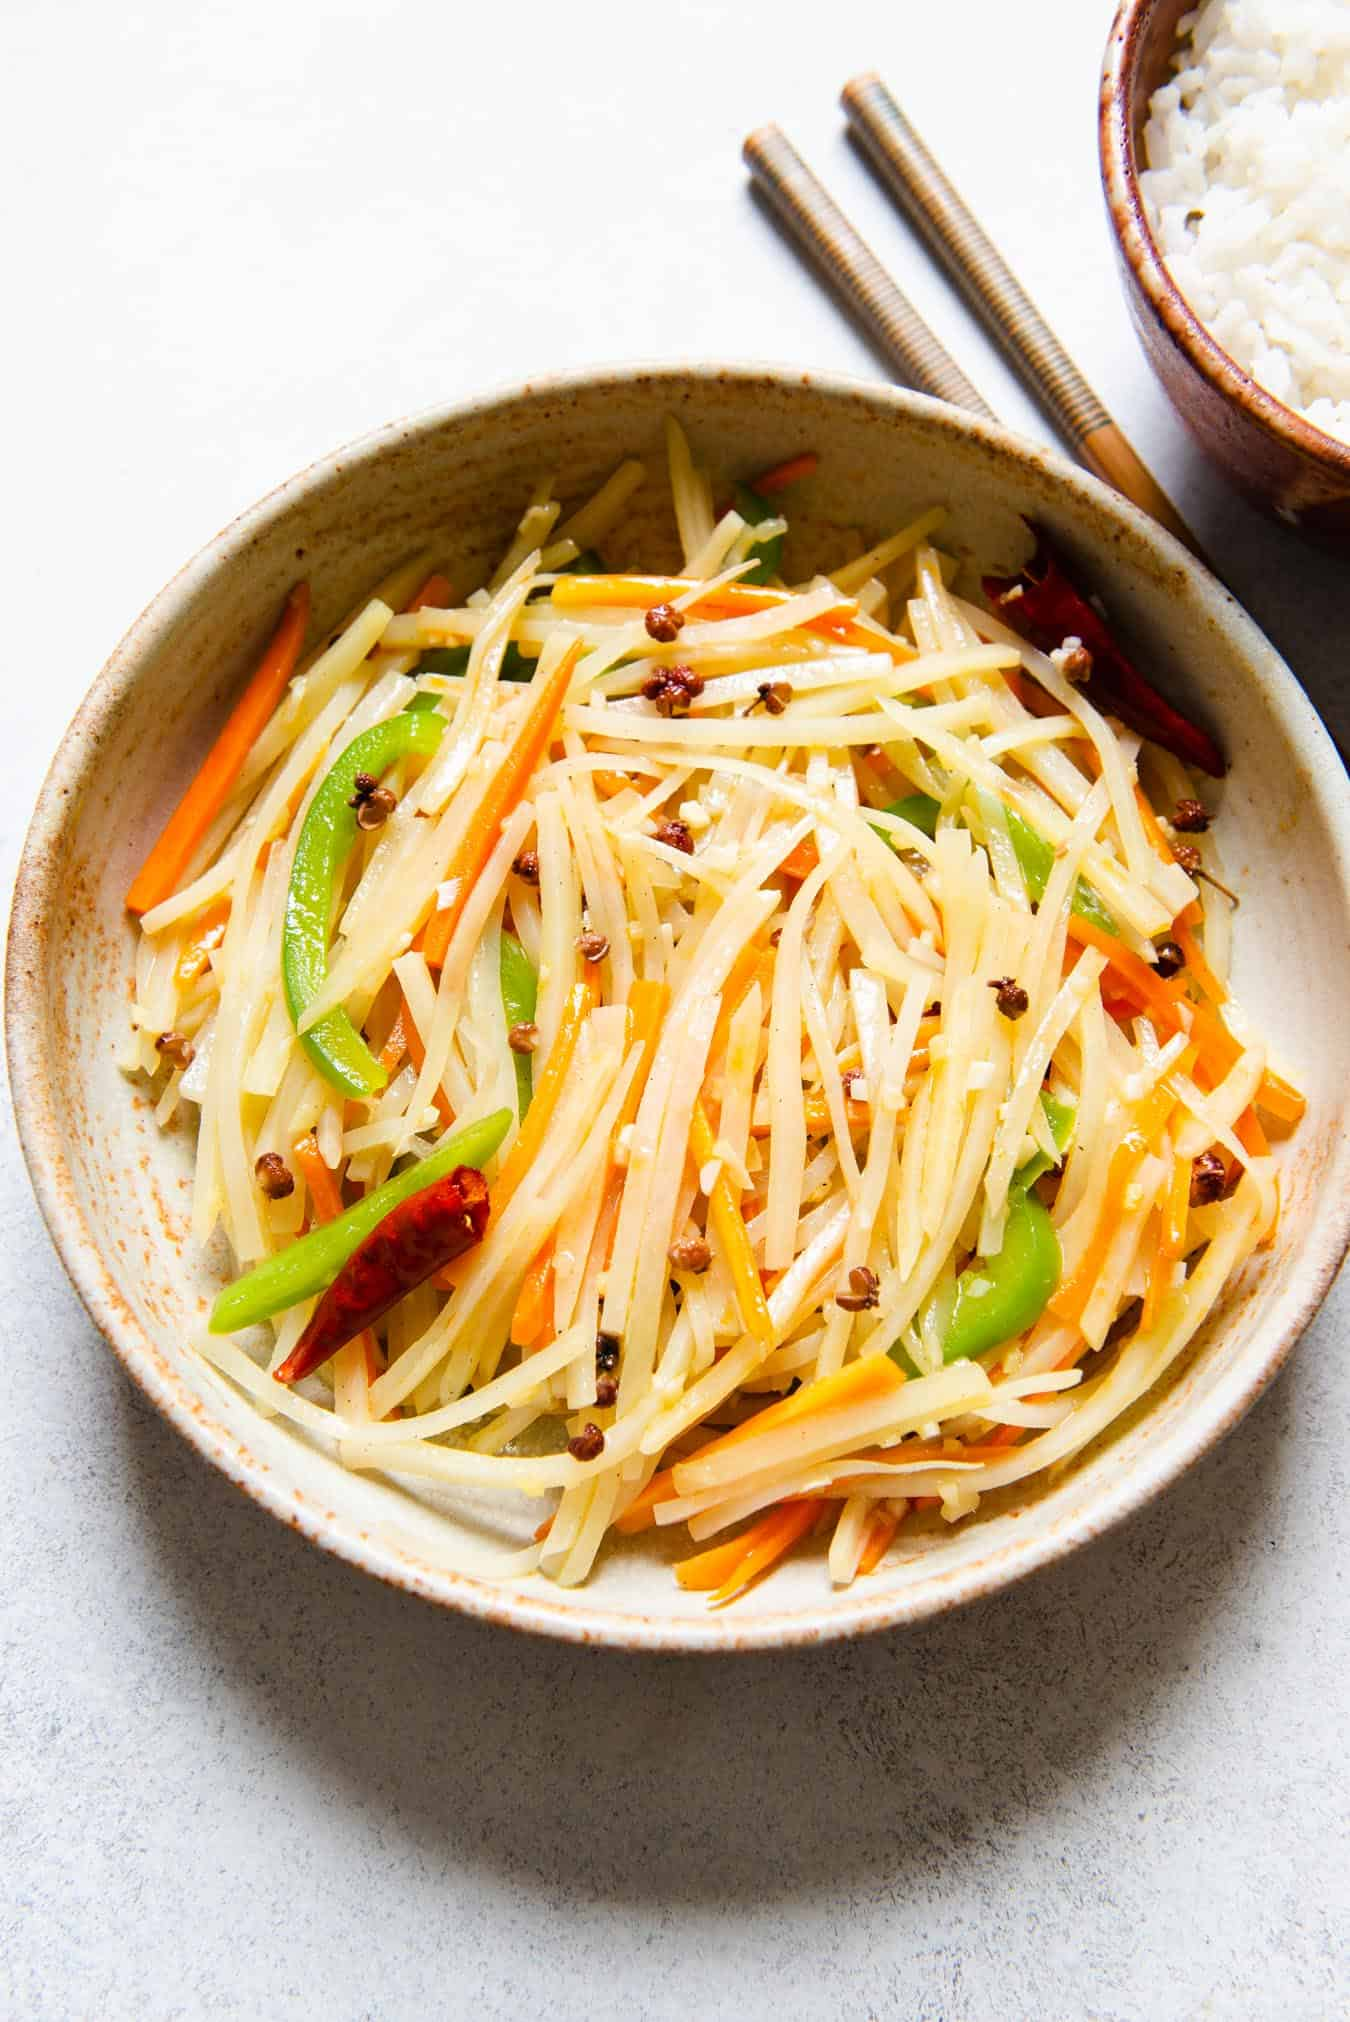 Tudou Si - Chinese Stir Fried Shredded Potatoes